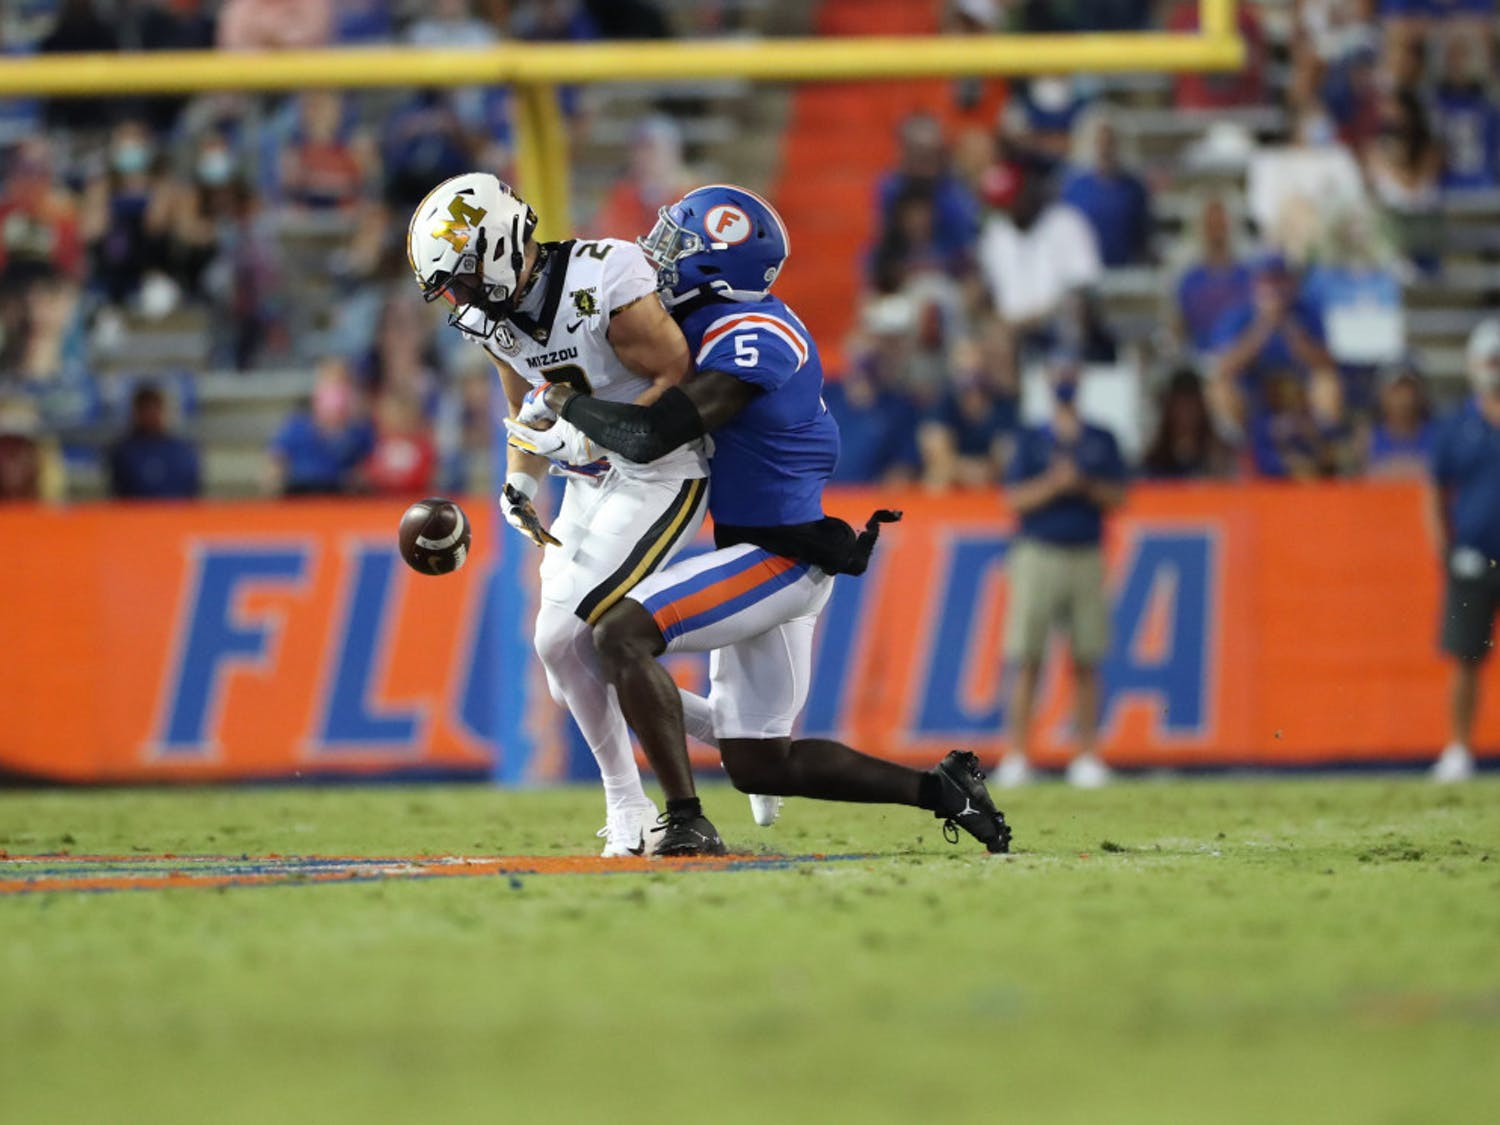 Kaiir Elam at the Gators' game against the Missouri Tigers last Saturday. Florida' defense will face its greatest challenge yet in Georgia this weekend.